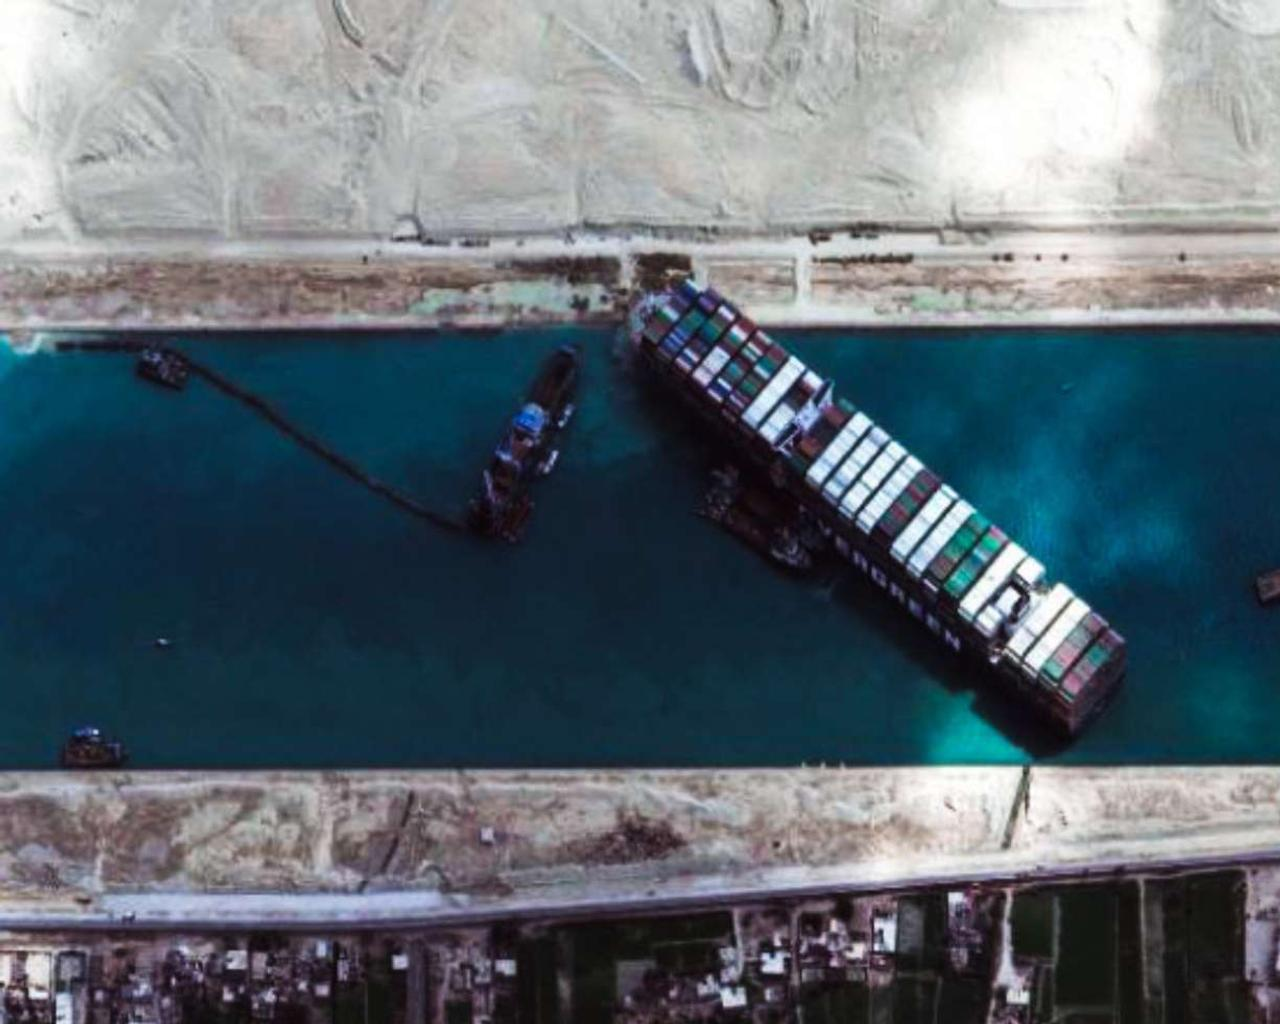 Suez Canal: The Ever Given container ship has started to move after a week of blockage.